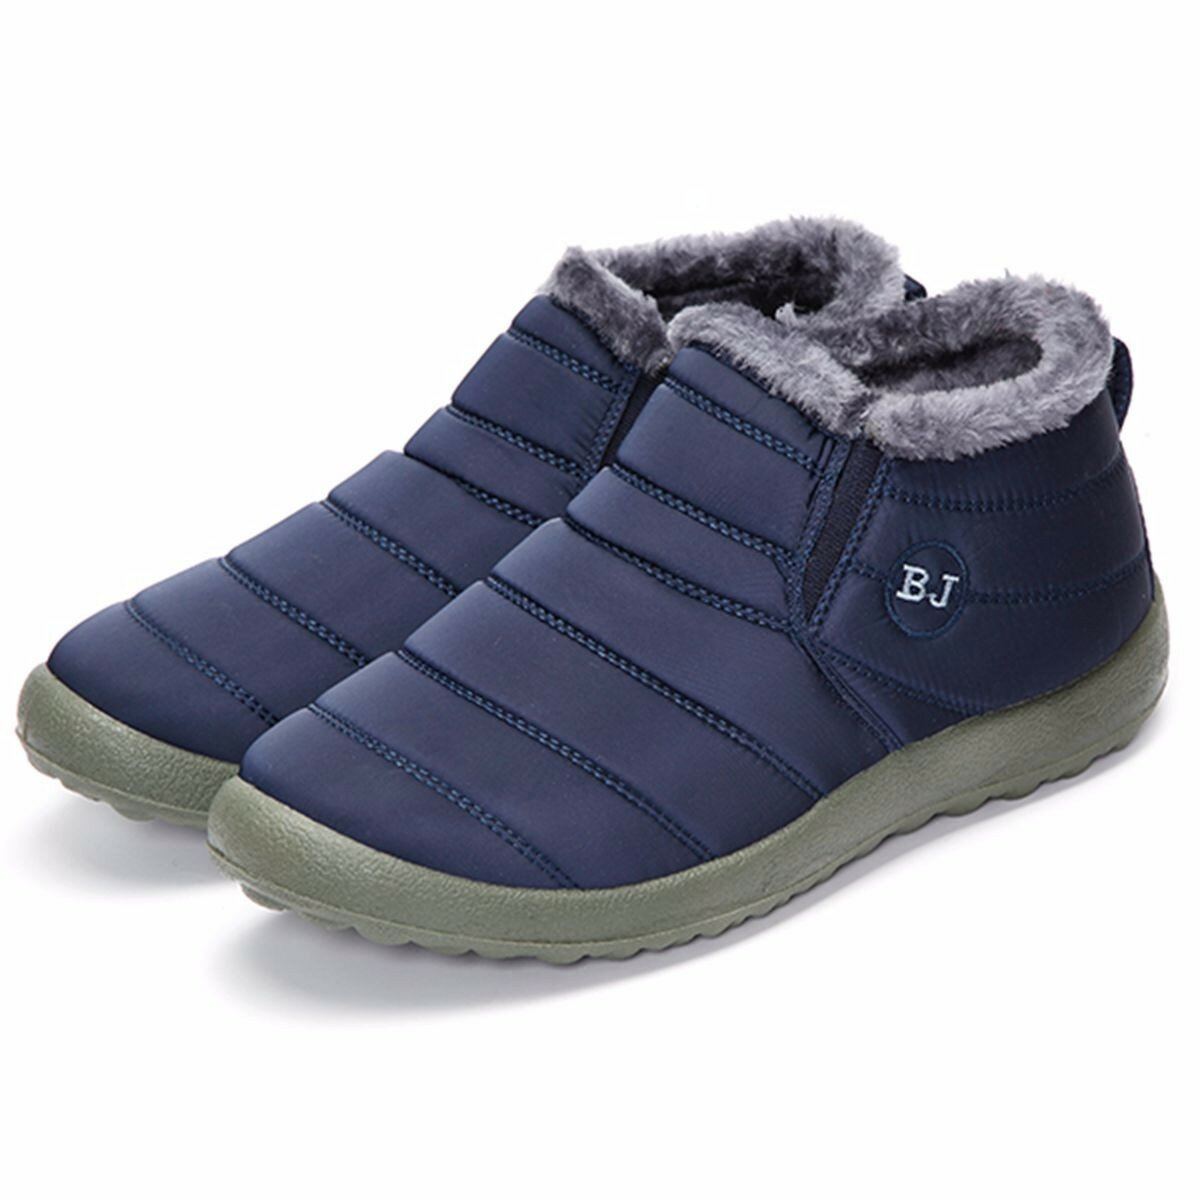 BJ Shoes Men Winter Cotton  Fur Lining Keep Warm Casual Snow Boots